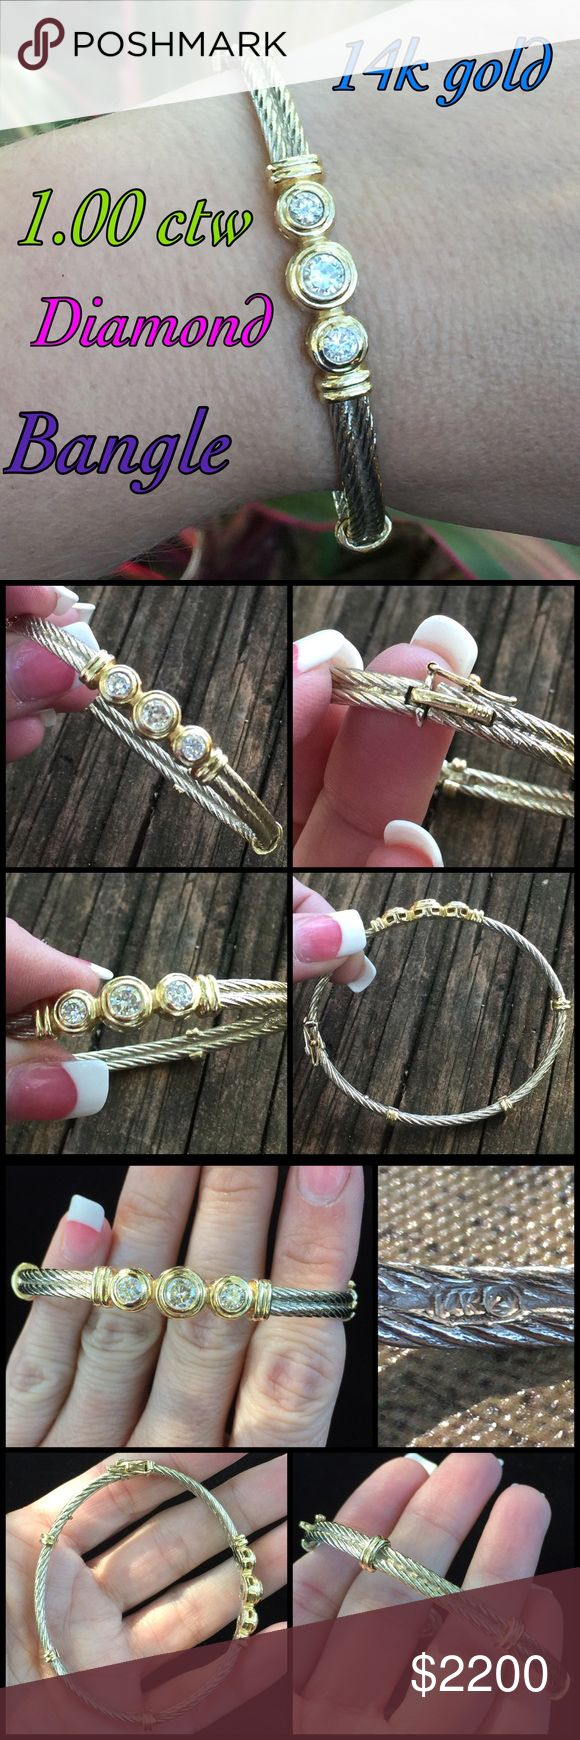 """14k gold 1.00 ctw Diamond Designer Bangle Stunning 14k Solid White Gold Cable Design w/ Yellow Gold Accents High Quality Designer 1.00 ctw Diamond Bangle. Measures 6.5"""" inside circumference. Marked 14k w/ triangle in circle makers mark, 76 KDJ 221231. Center diamond 0.50 ctw, 2 side diamonds are each 0.25 ctw. Weighs 23 grams! Bangle is in great condition, ready to wear & enjoy everyday! Thanks 4 looking. I ship same day. Please make REASONABLE offer using offer button only. No low ball or…"""